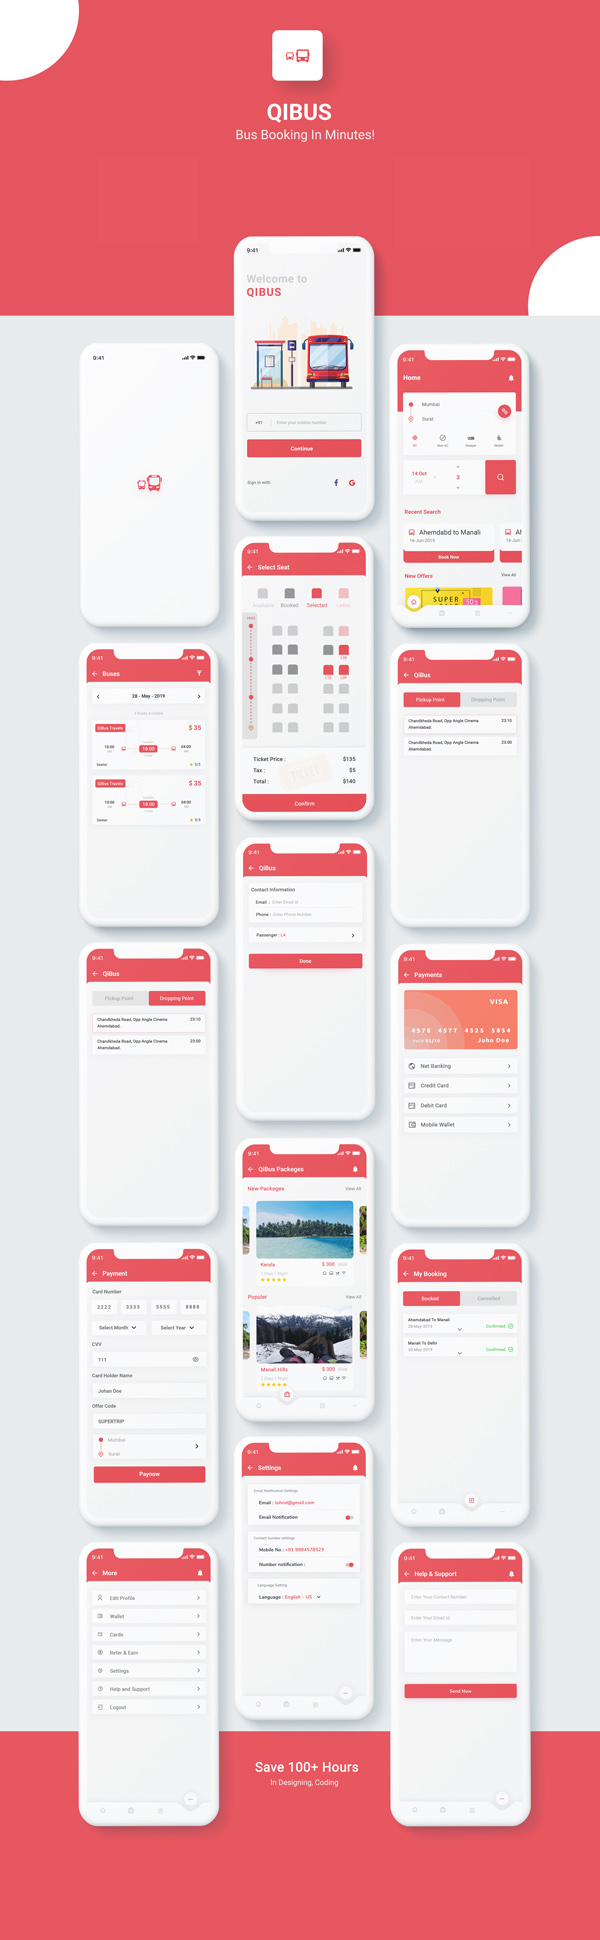 Free Bus Booking Android Kotlin App UI Template | QIBus | Iqonic Design free bus booking android kotlin app ui template QIBus qibus